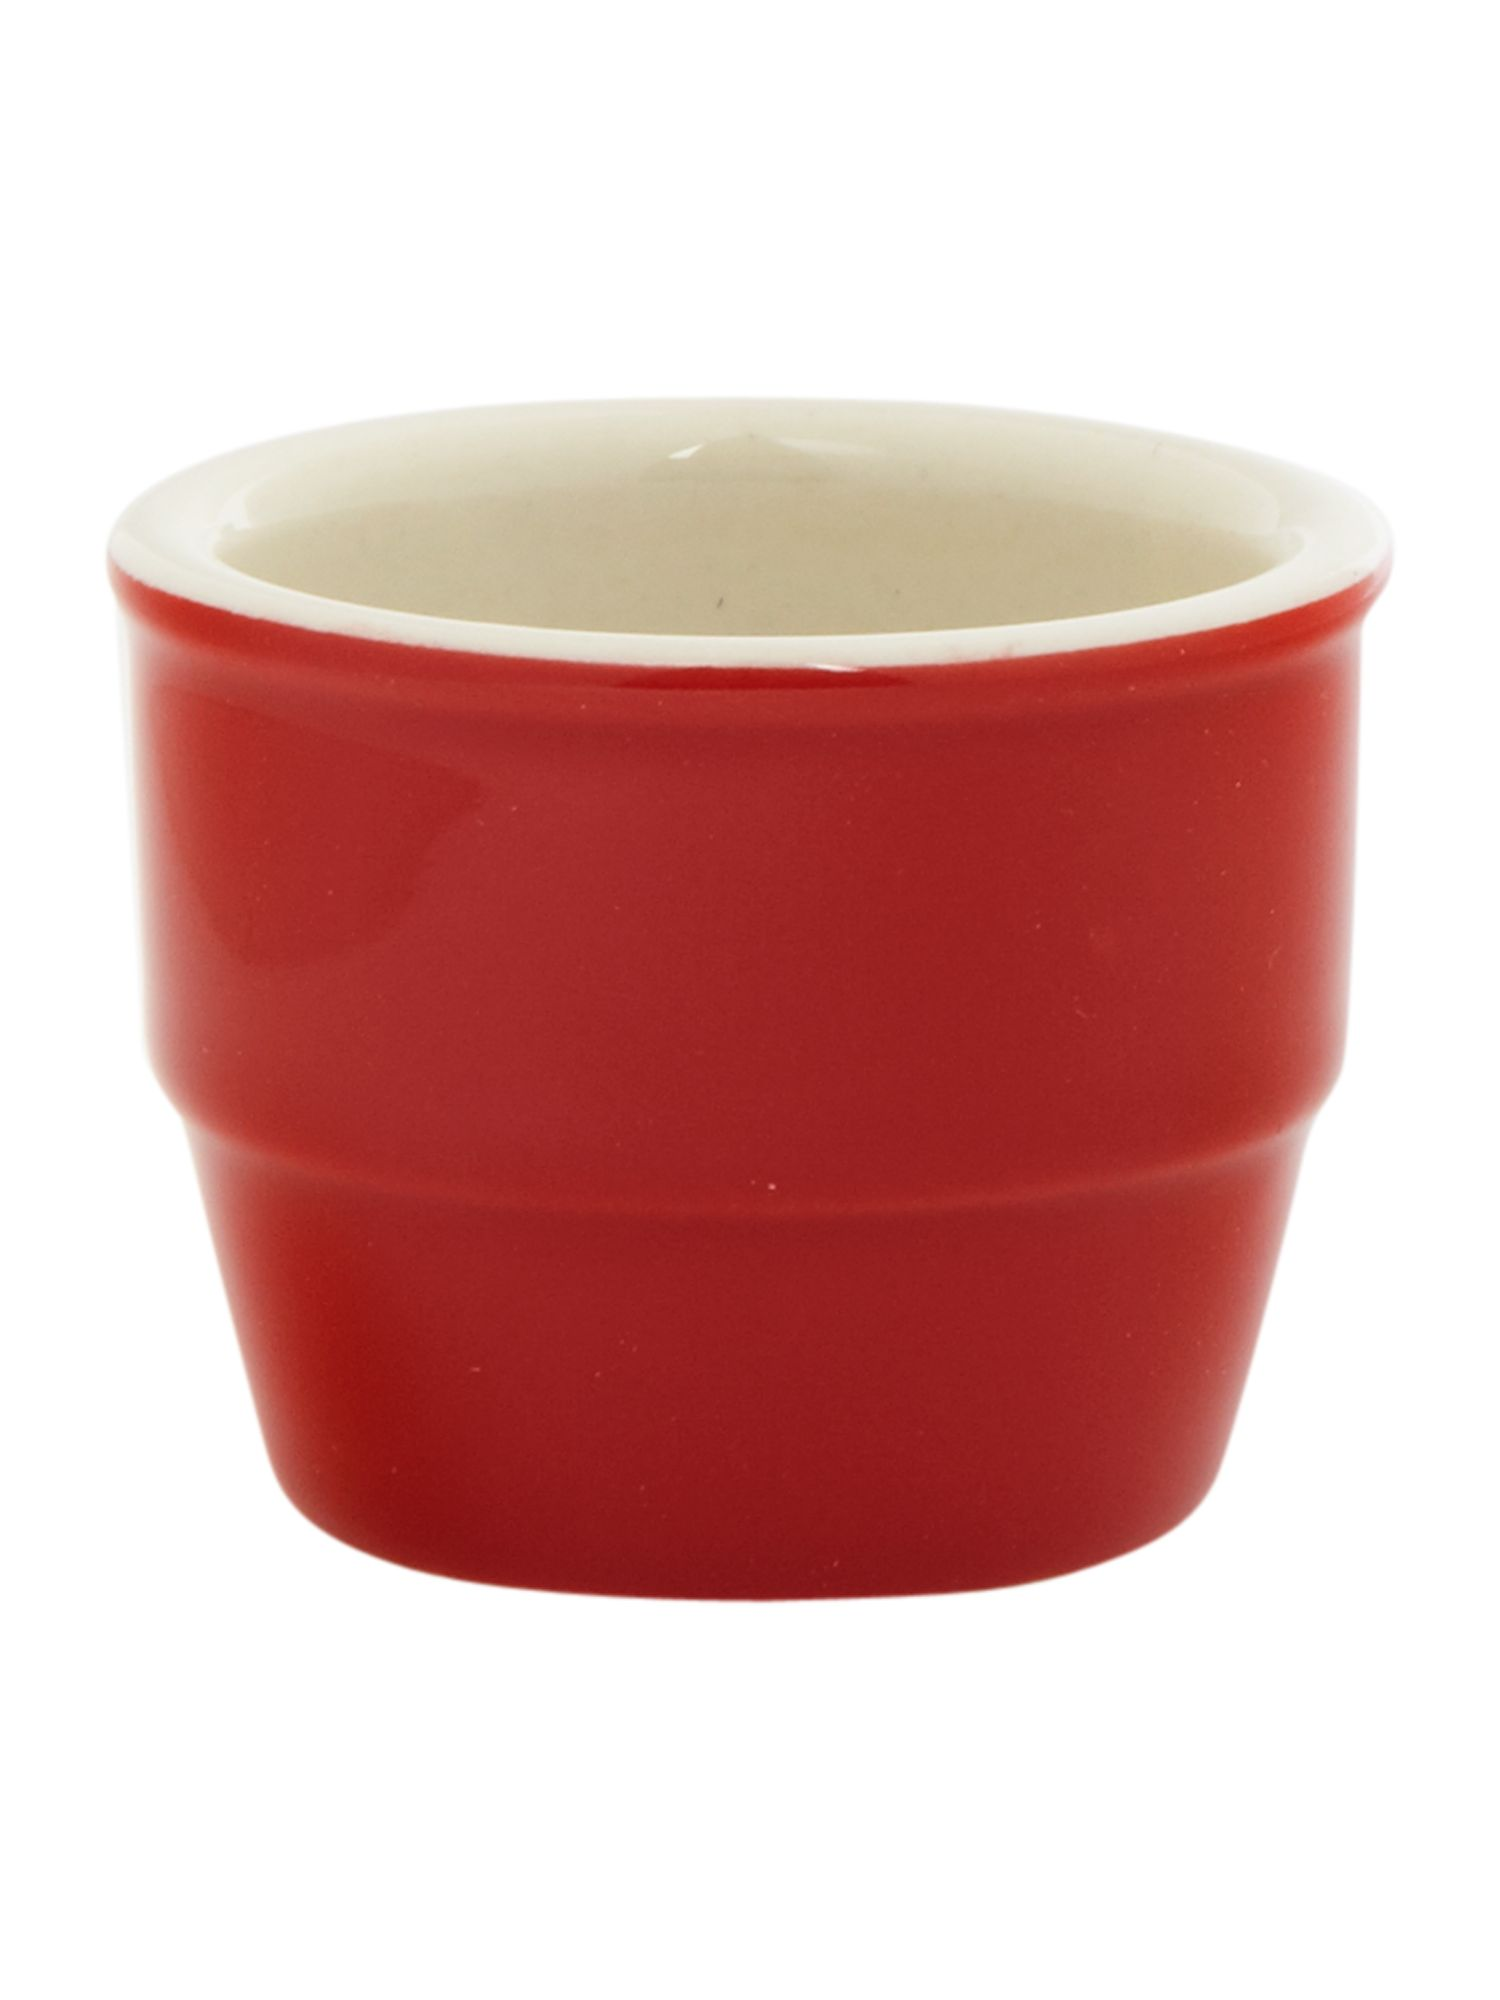 Maison egg cups set of 4, red